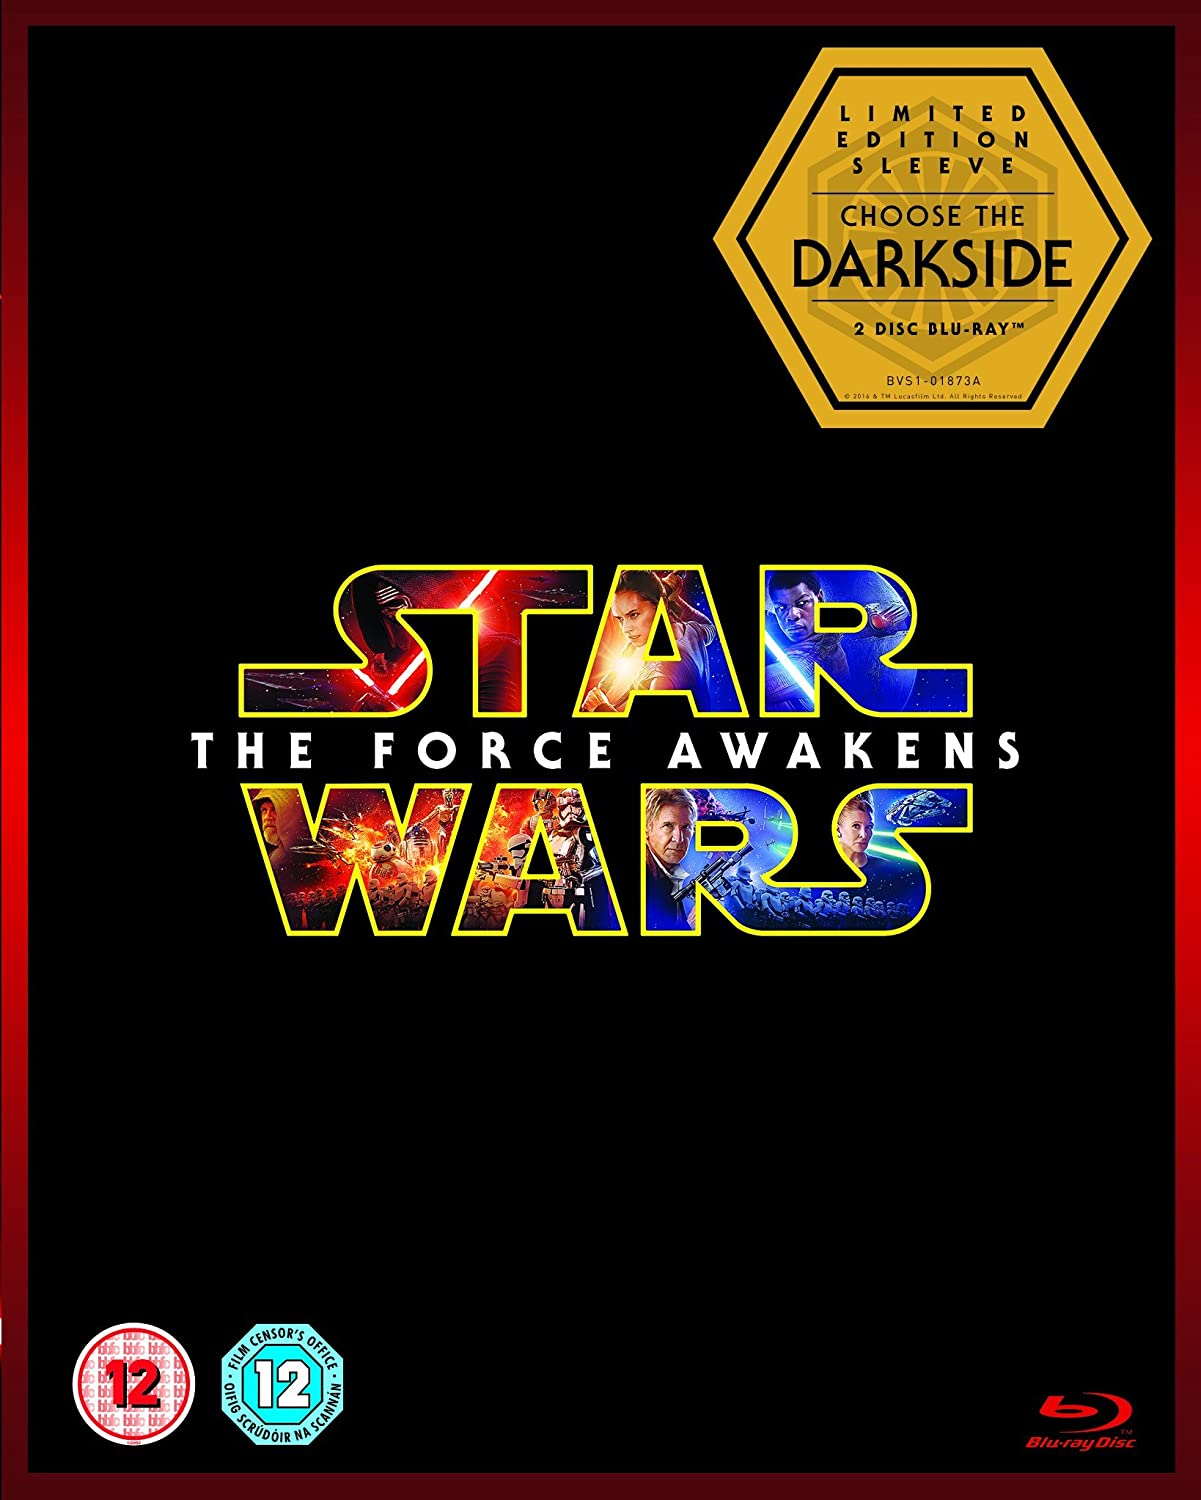 Star wars the force awakens limited edition dark side artwork star wars the force awakens limited edition dark side artwork sleeve blu ray 2015 amazon harrison ford carrie fisher daisy ridley john boyega malvernweather Image collections